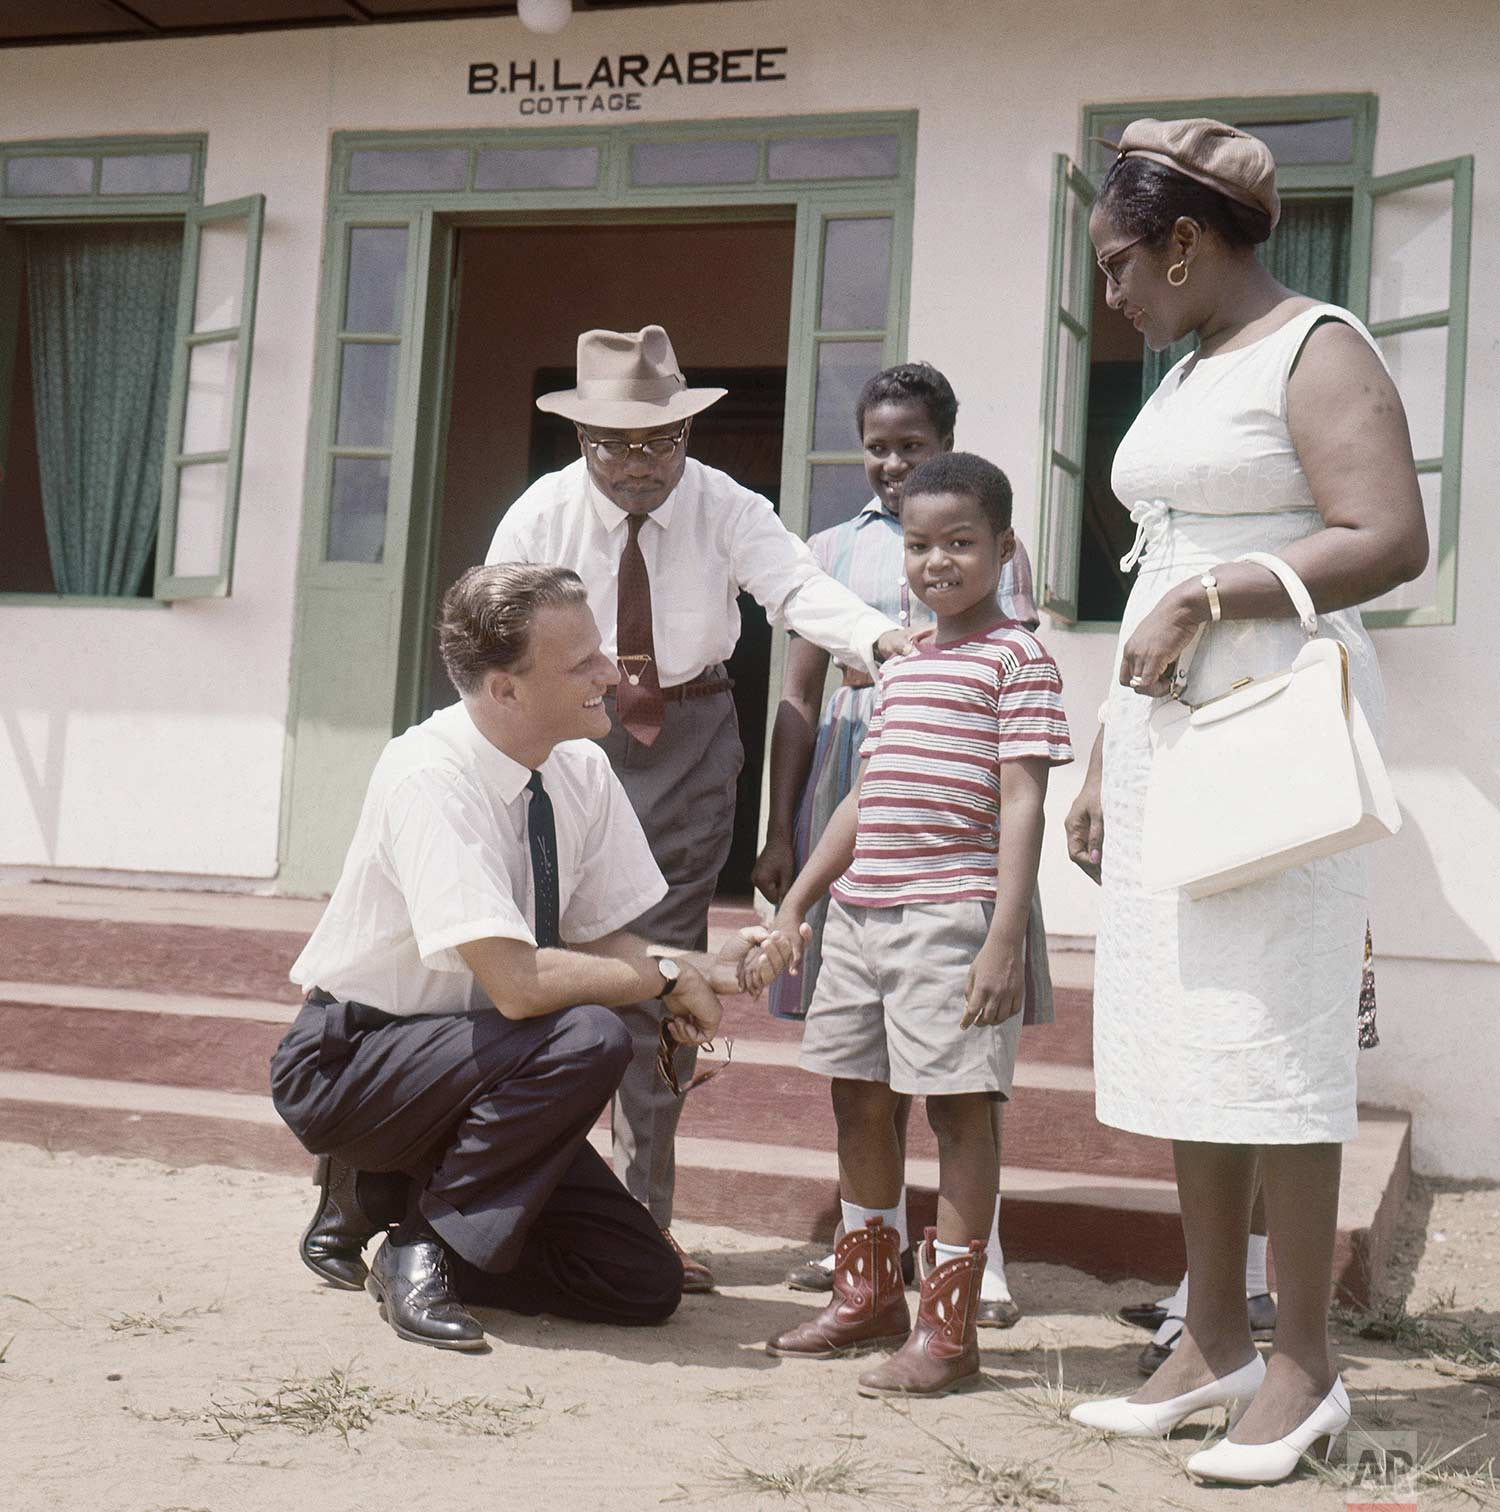 The Rev. Billy Graham, American evangelist, is shown with children at Virginia Village, 20 miles from Montovia in 1960. (AP Photo)